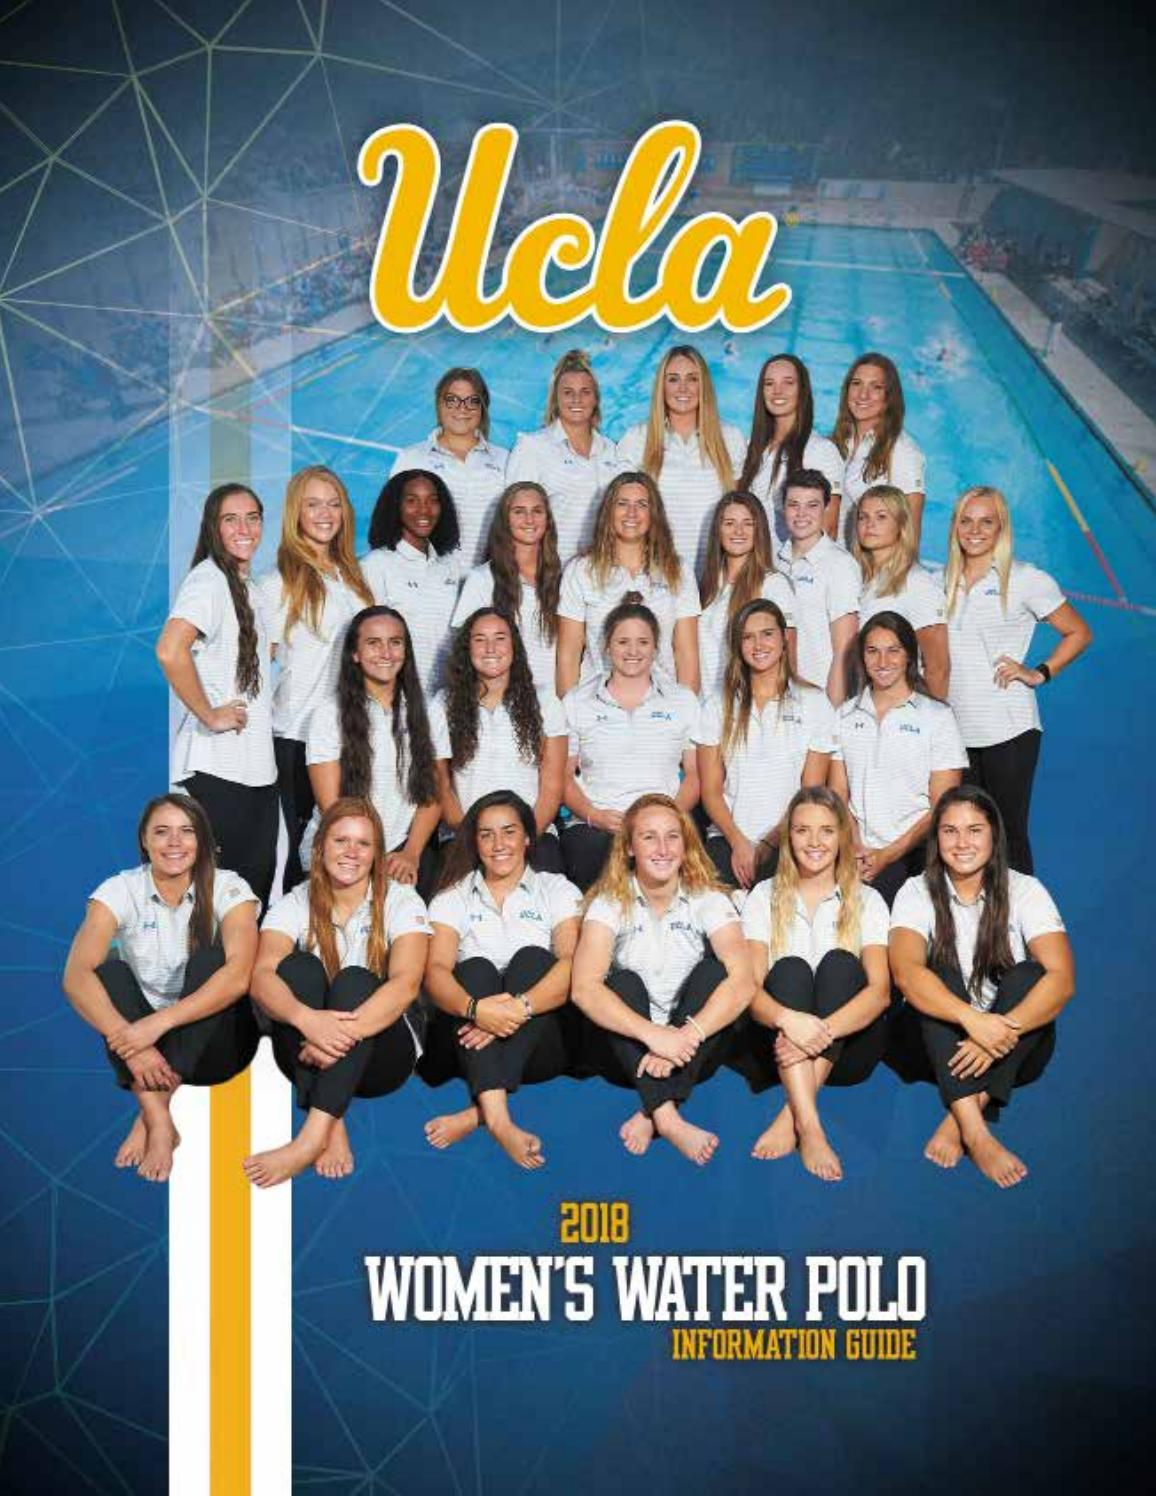 f6a8fdc18c0 2018 UCLA Women s Water Polo Information Guide by UCLA Athletics - issuu